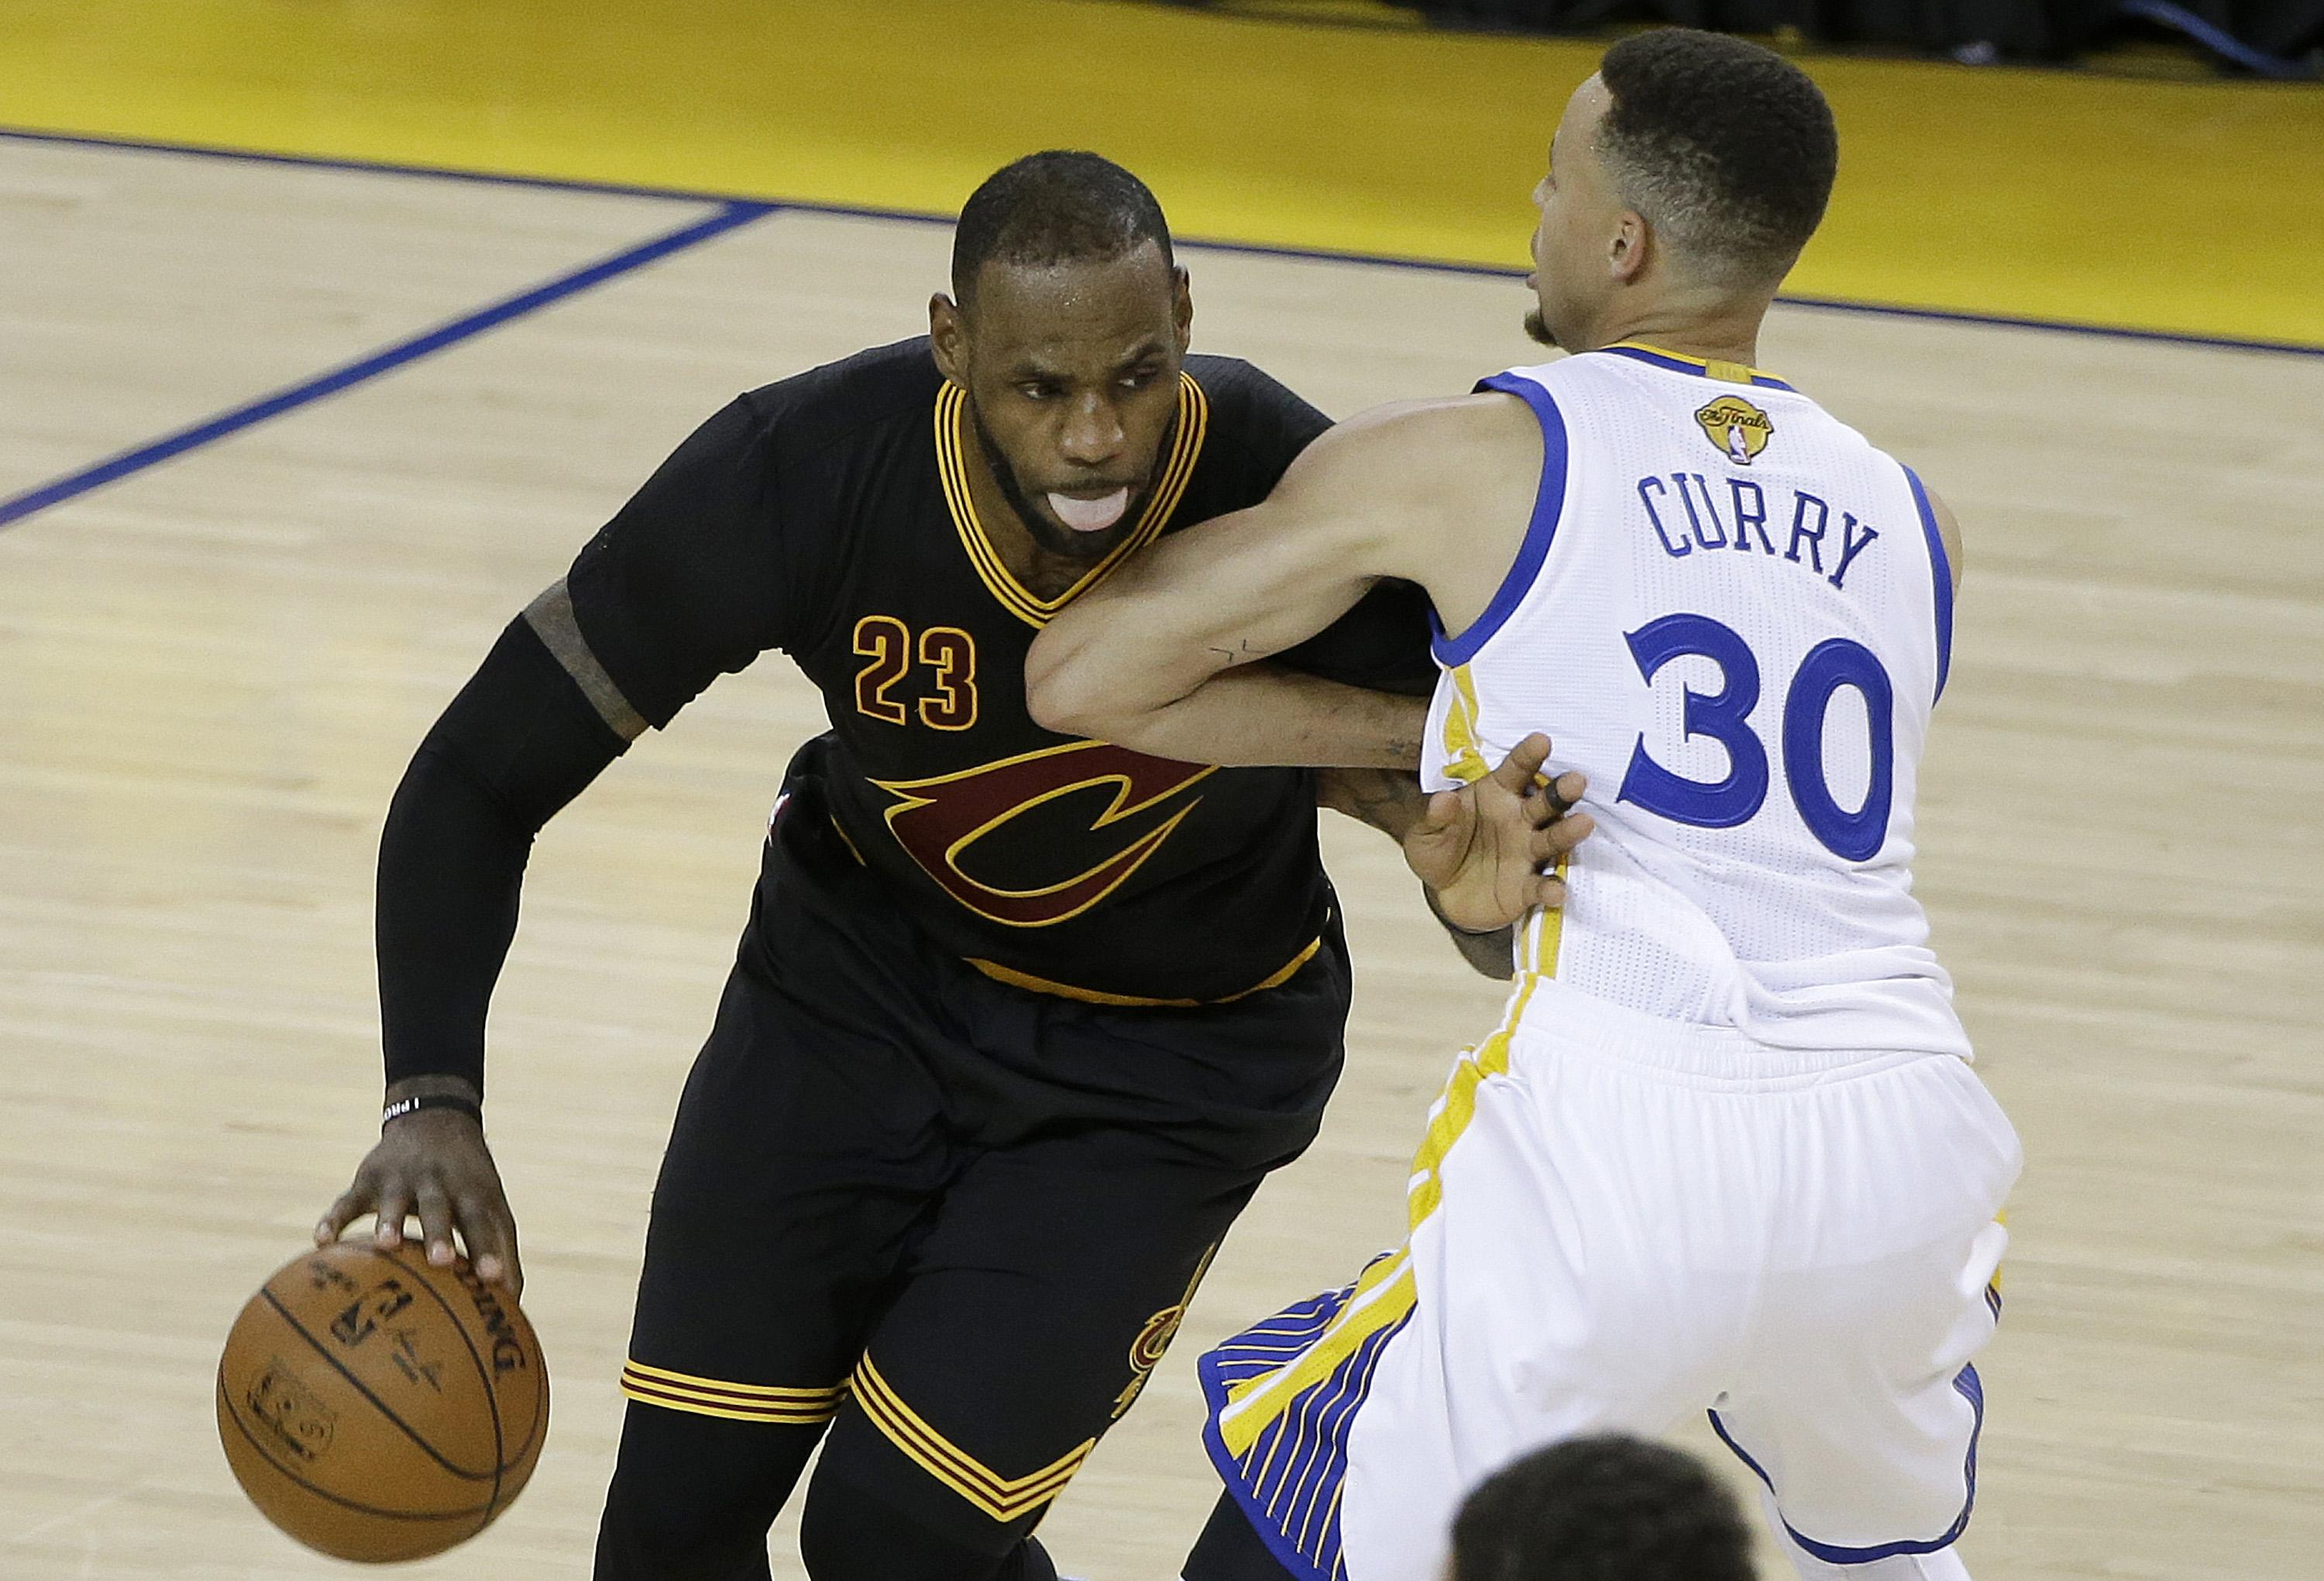 5691ca0235d2 Cleveland Cavaliers forward LeBron James dribbles against Golden State  Warriors guard Stephen Curry during the second